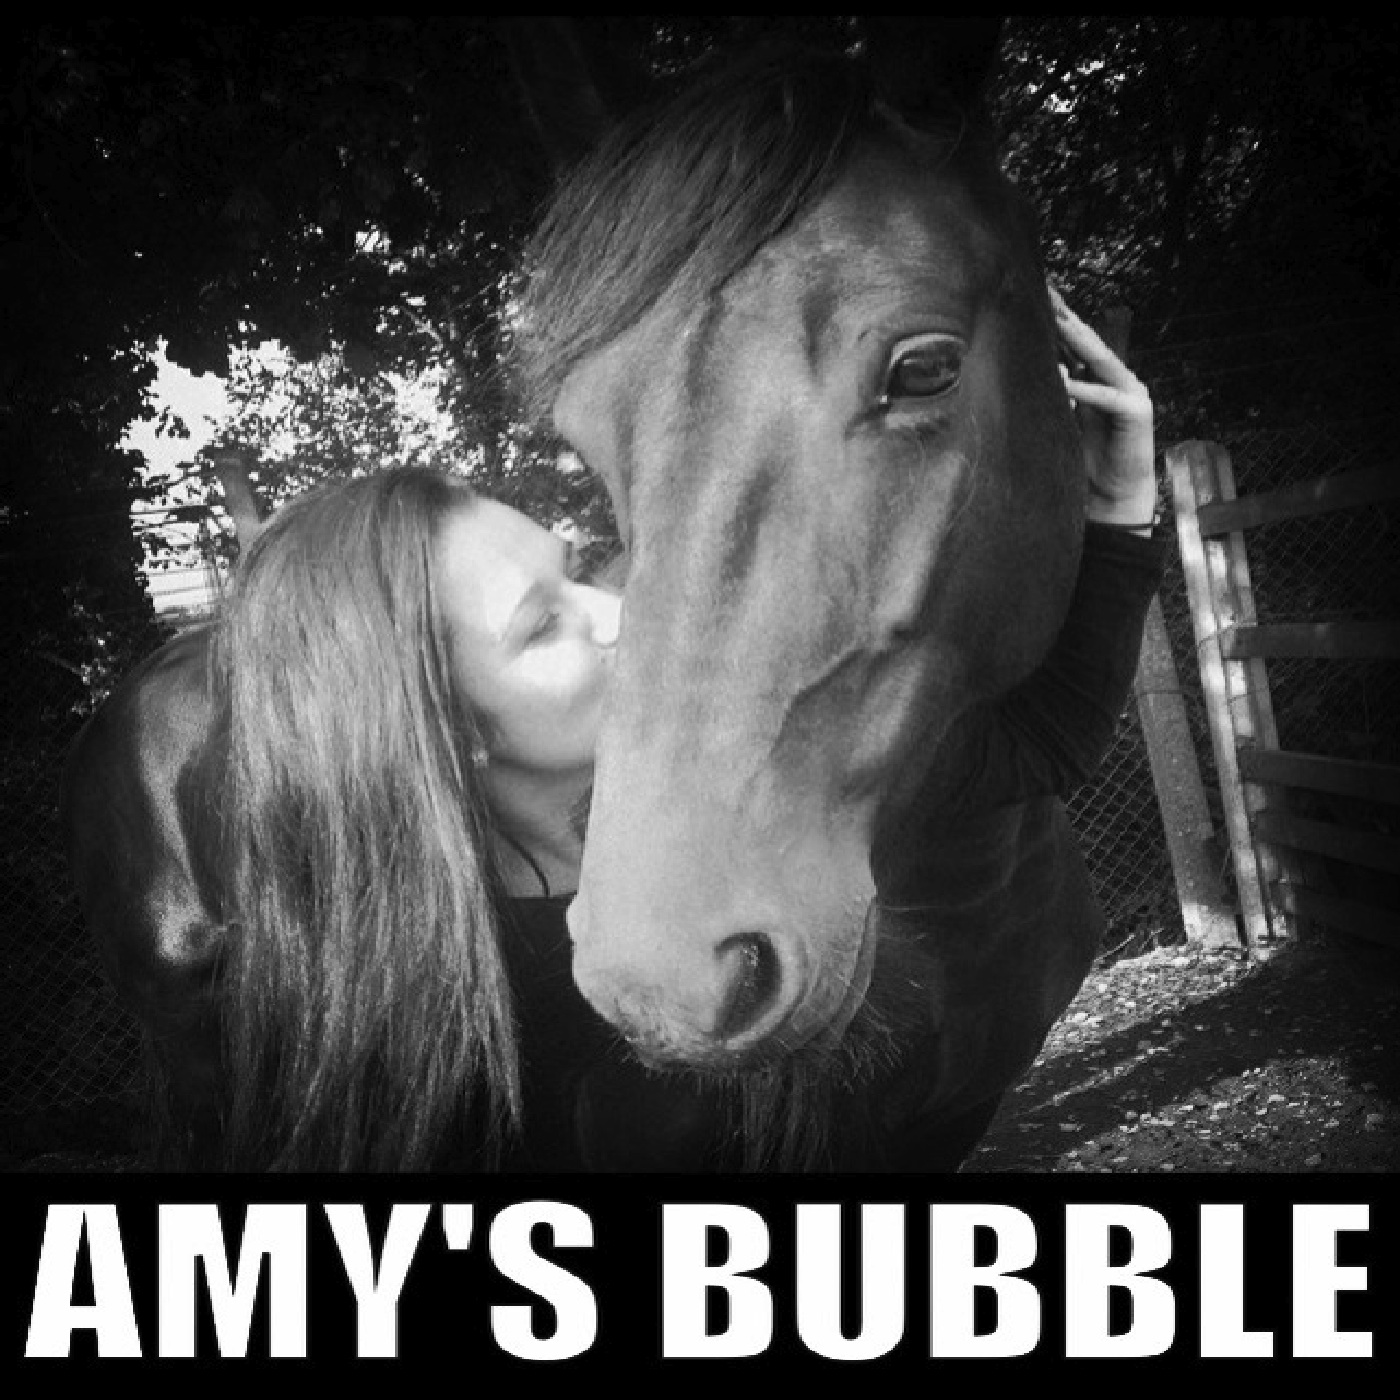 Amy's Bubble